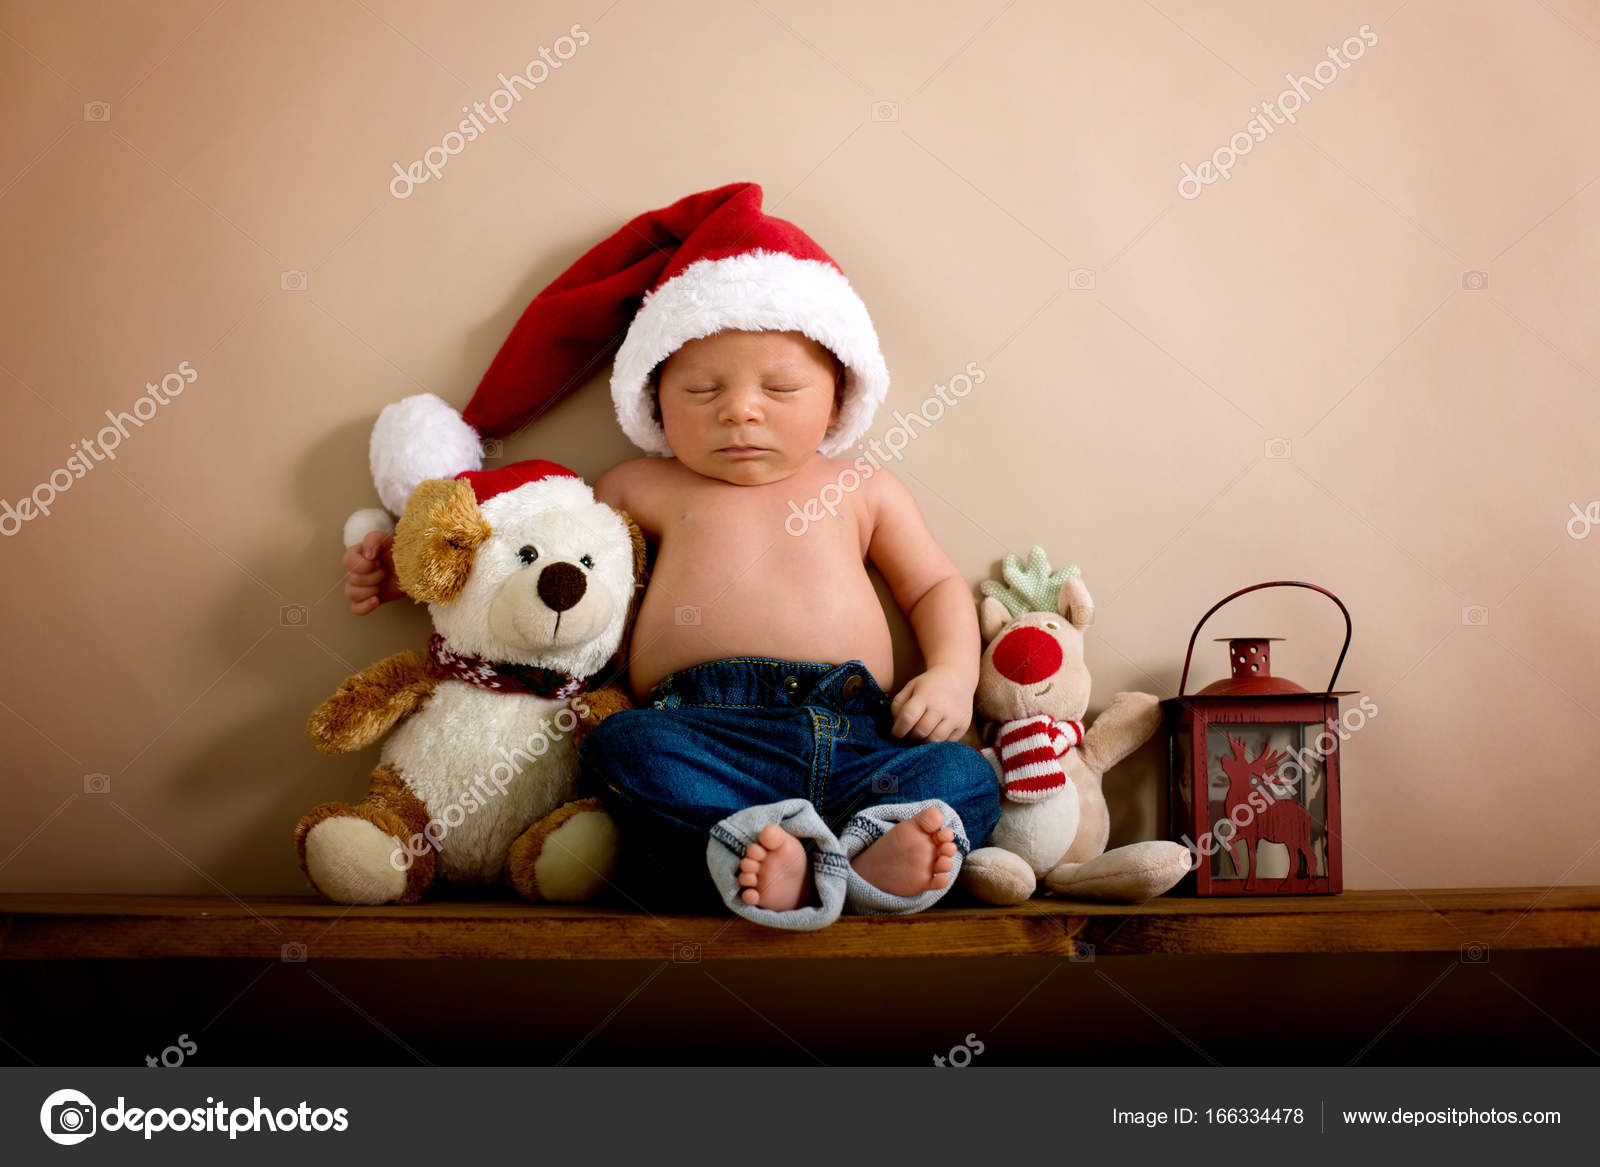 c01d0d241e8bf Newborn baby boy wearing a christmas hat and jeans